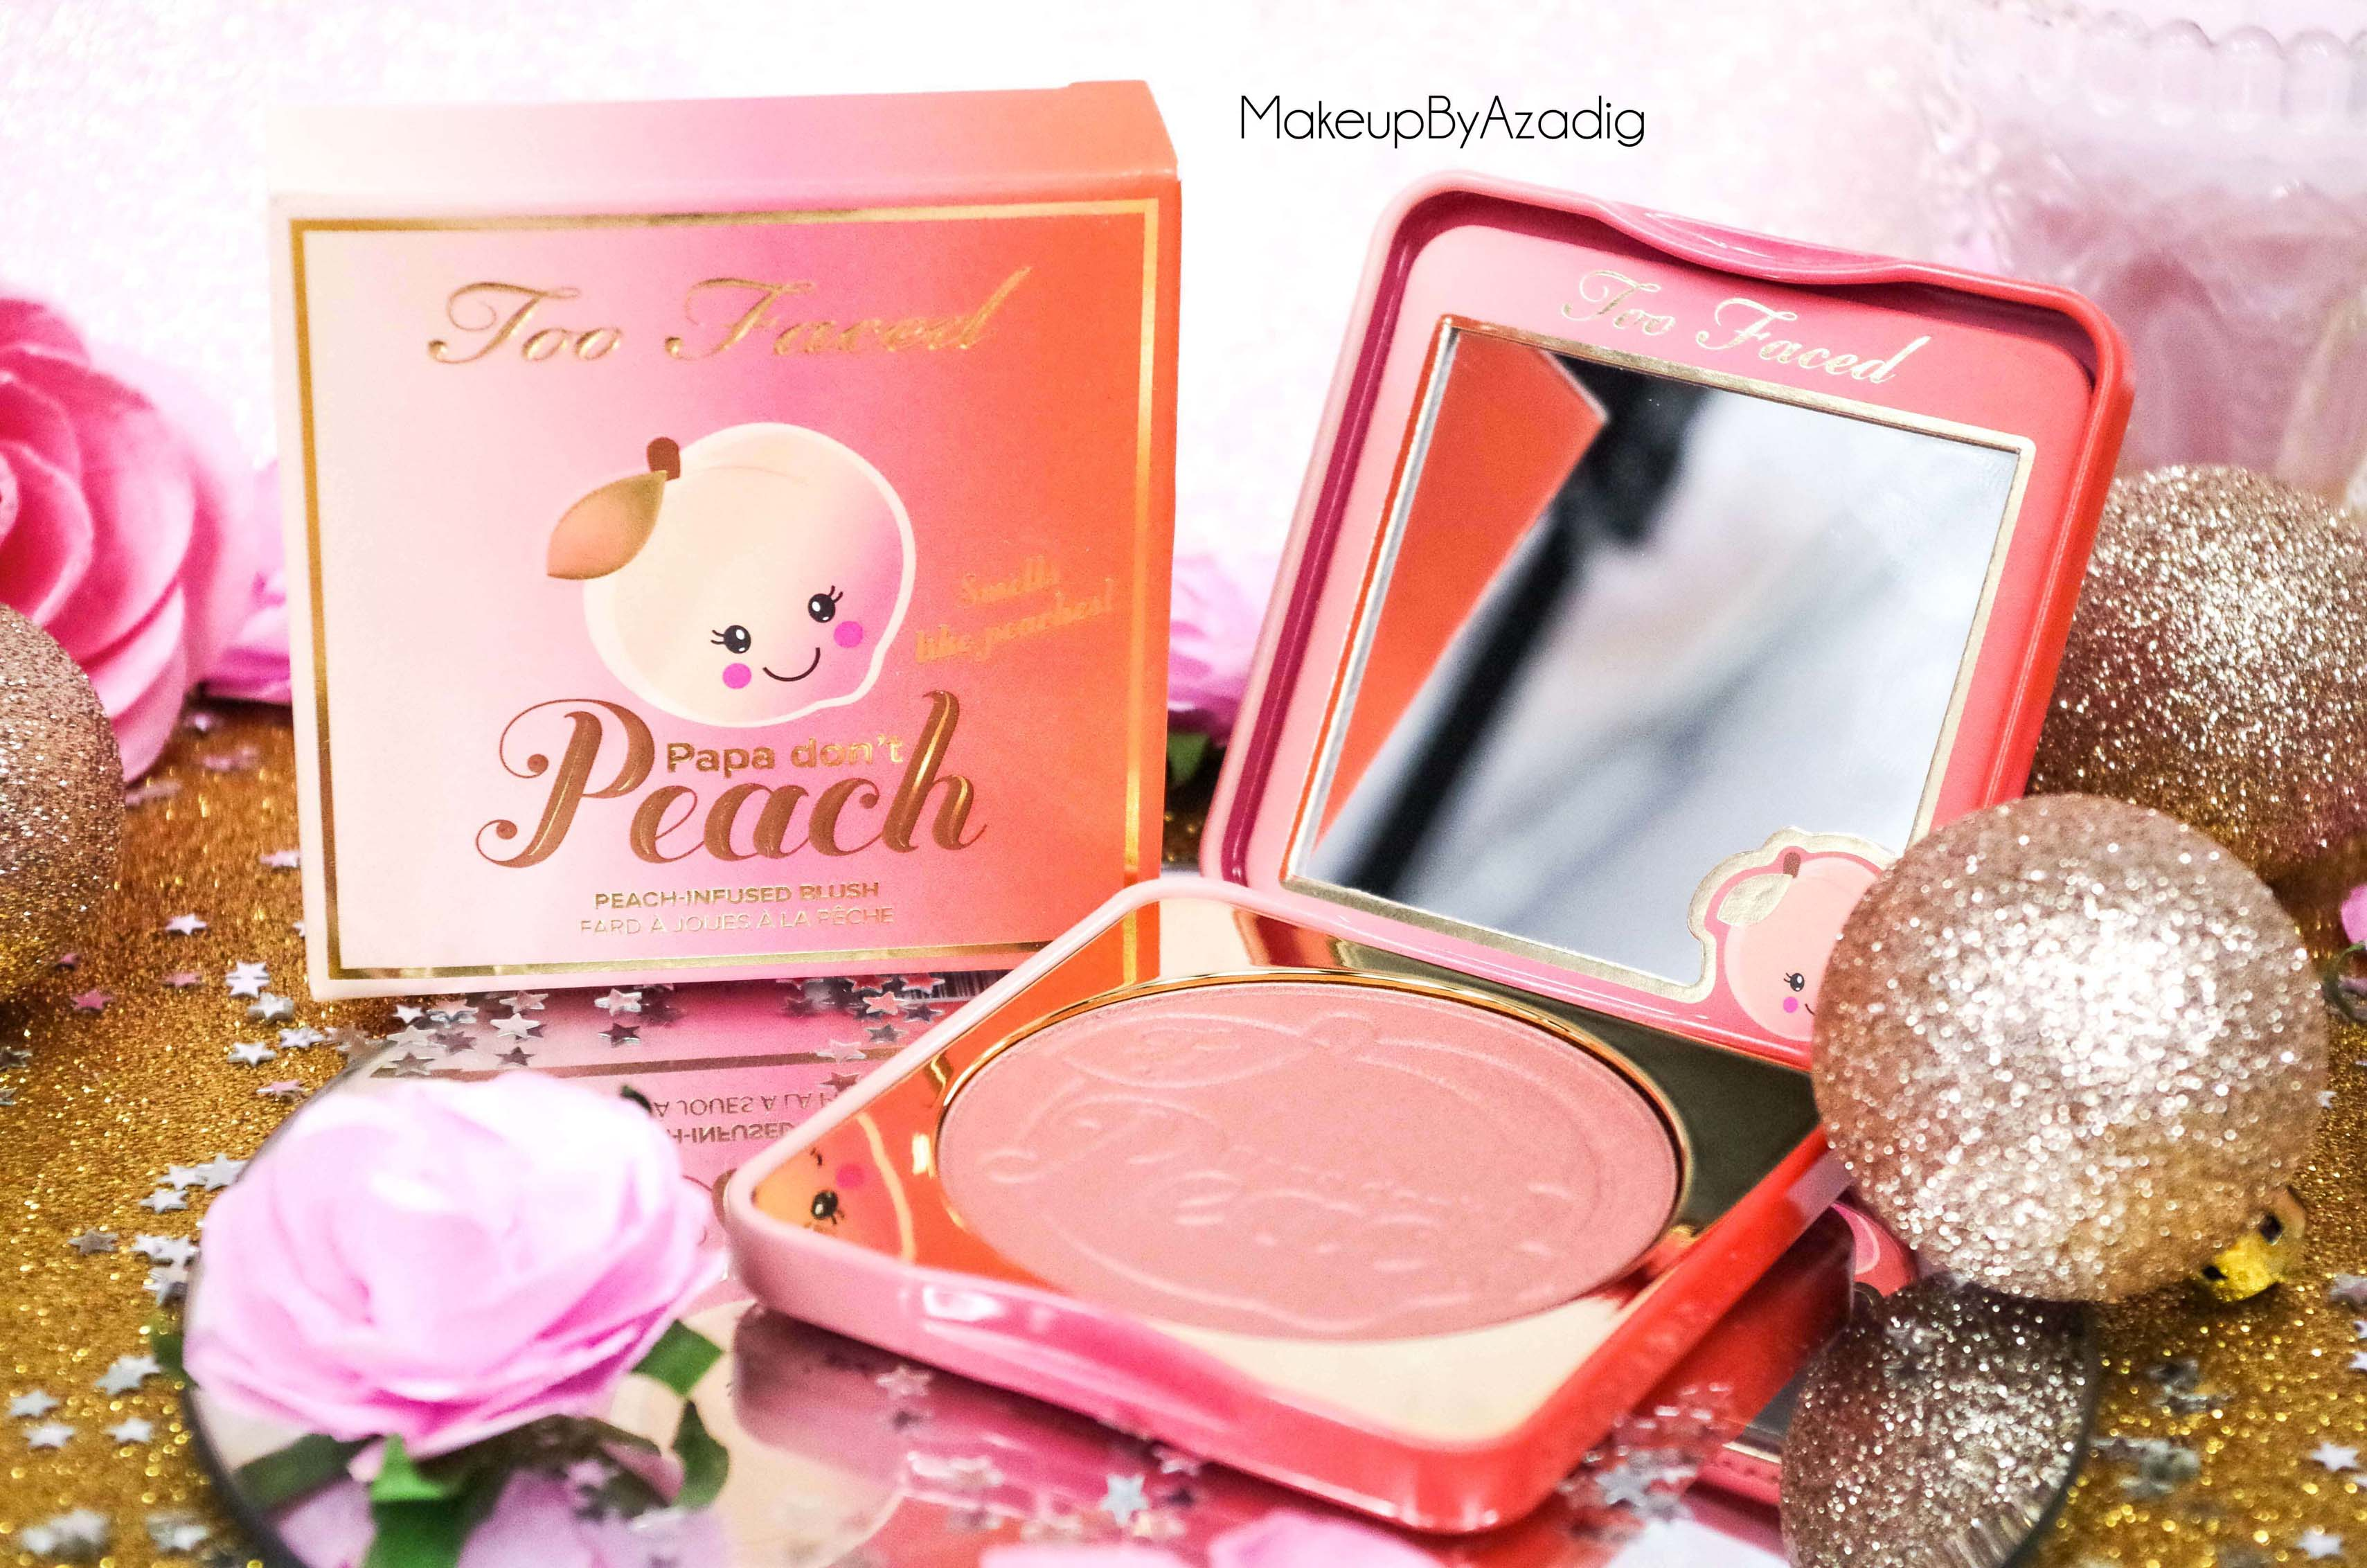 review-nouveau-blush-papa-dont-peach-too-faced-sephora-ete-printemps-paris-sweet-peach-swatch-avis-makeupbyazadig-troyes-2